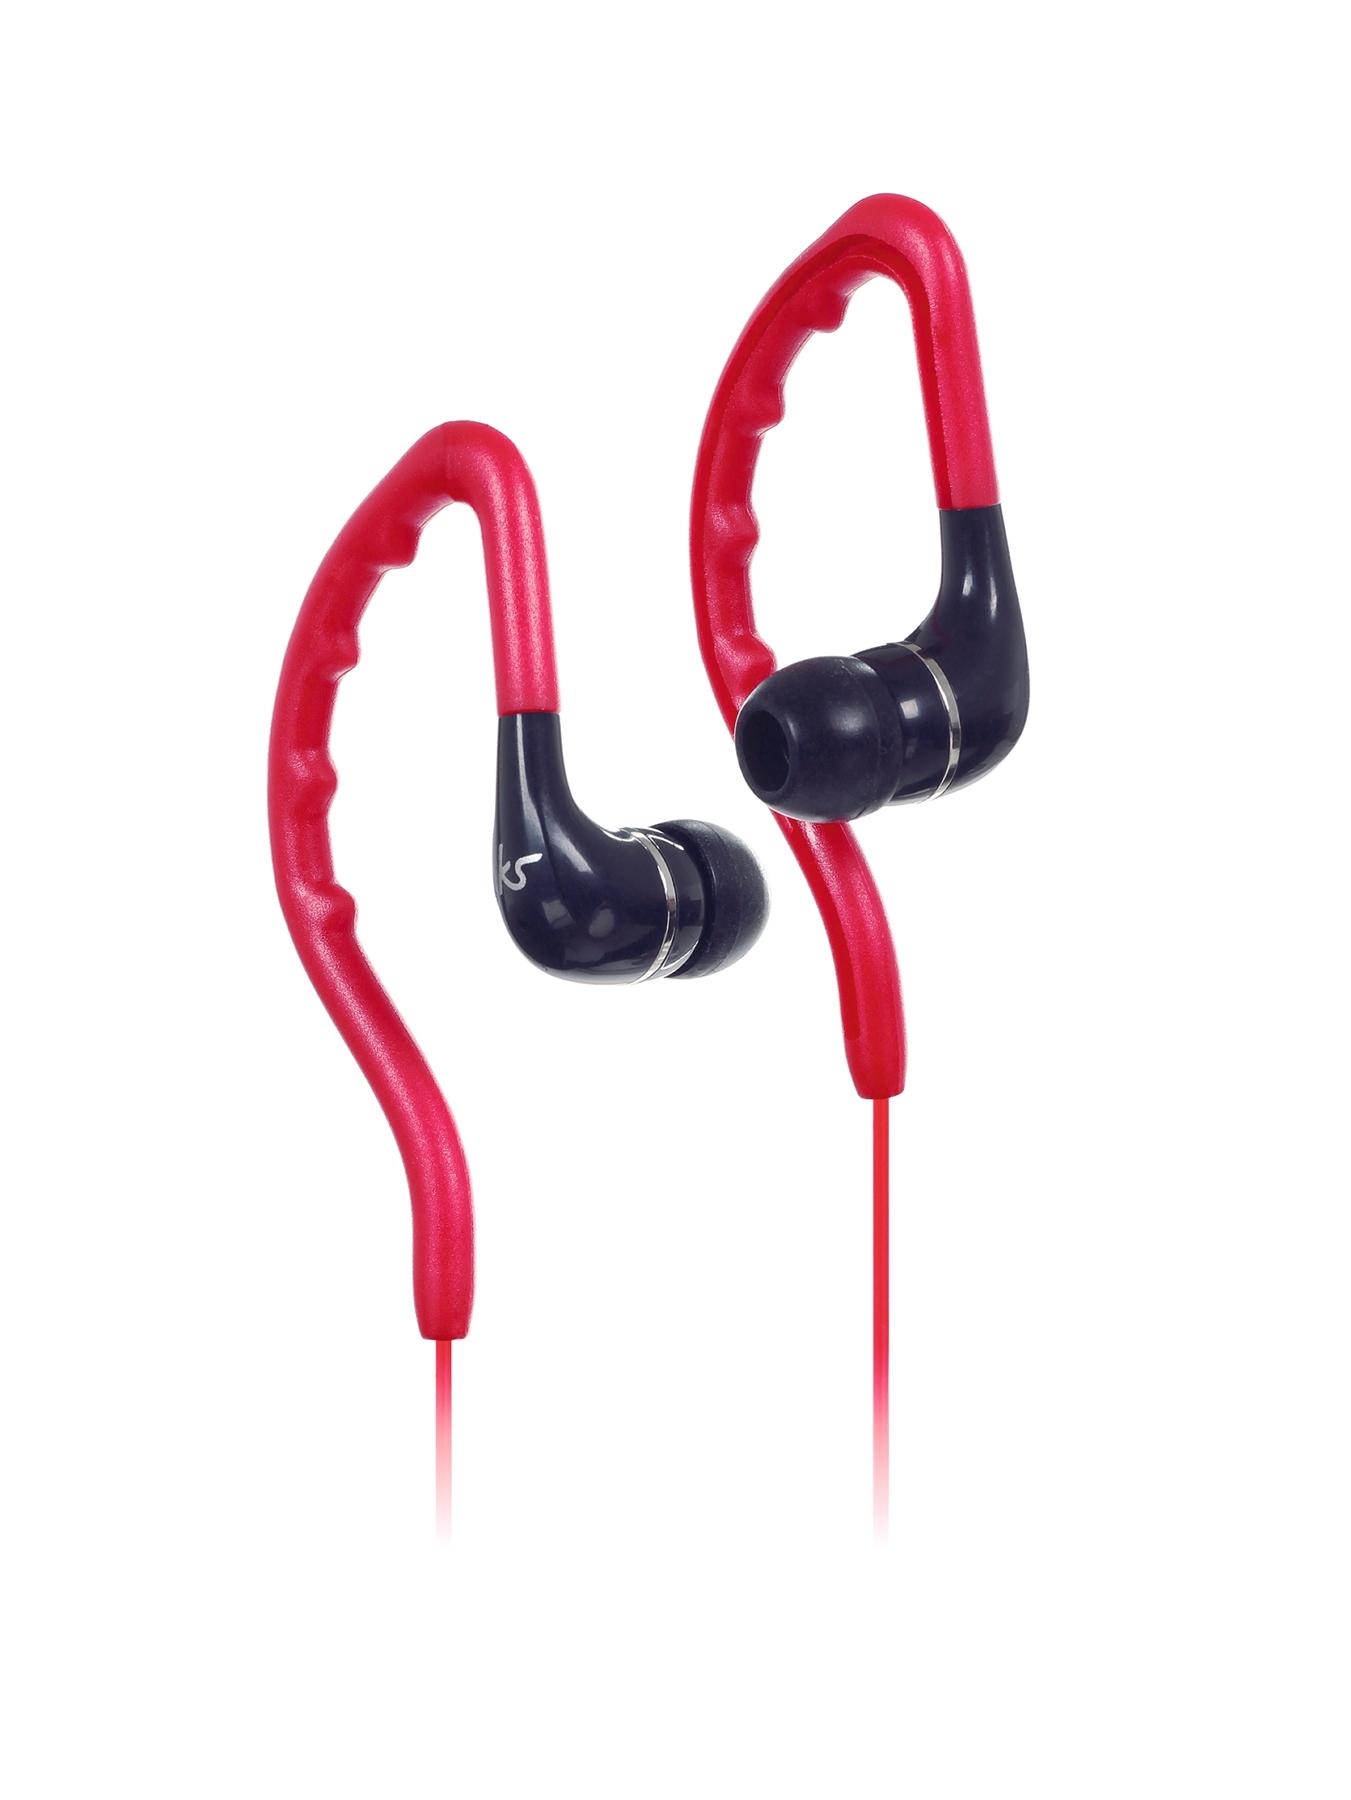 Enduro Water Resistant Sports Earhook Earphones - Red